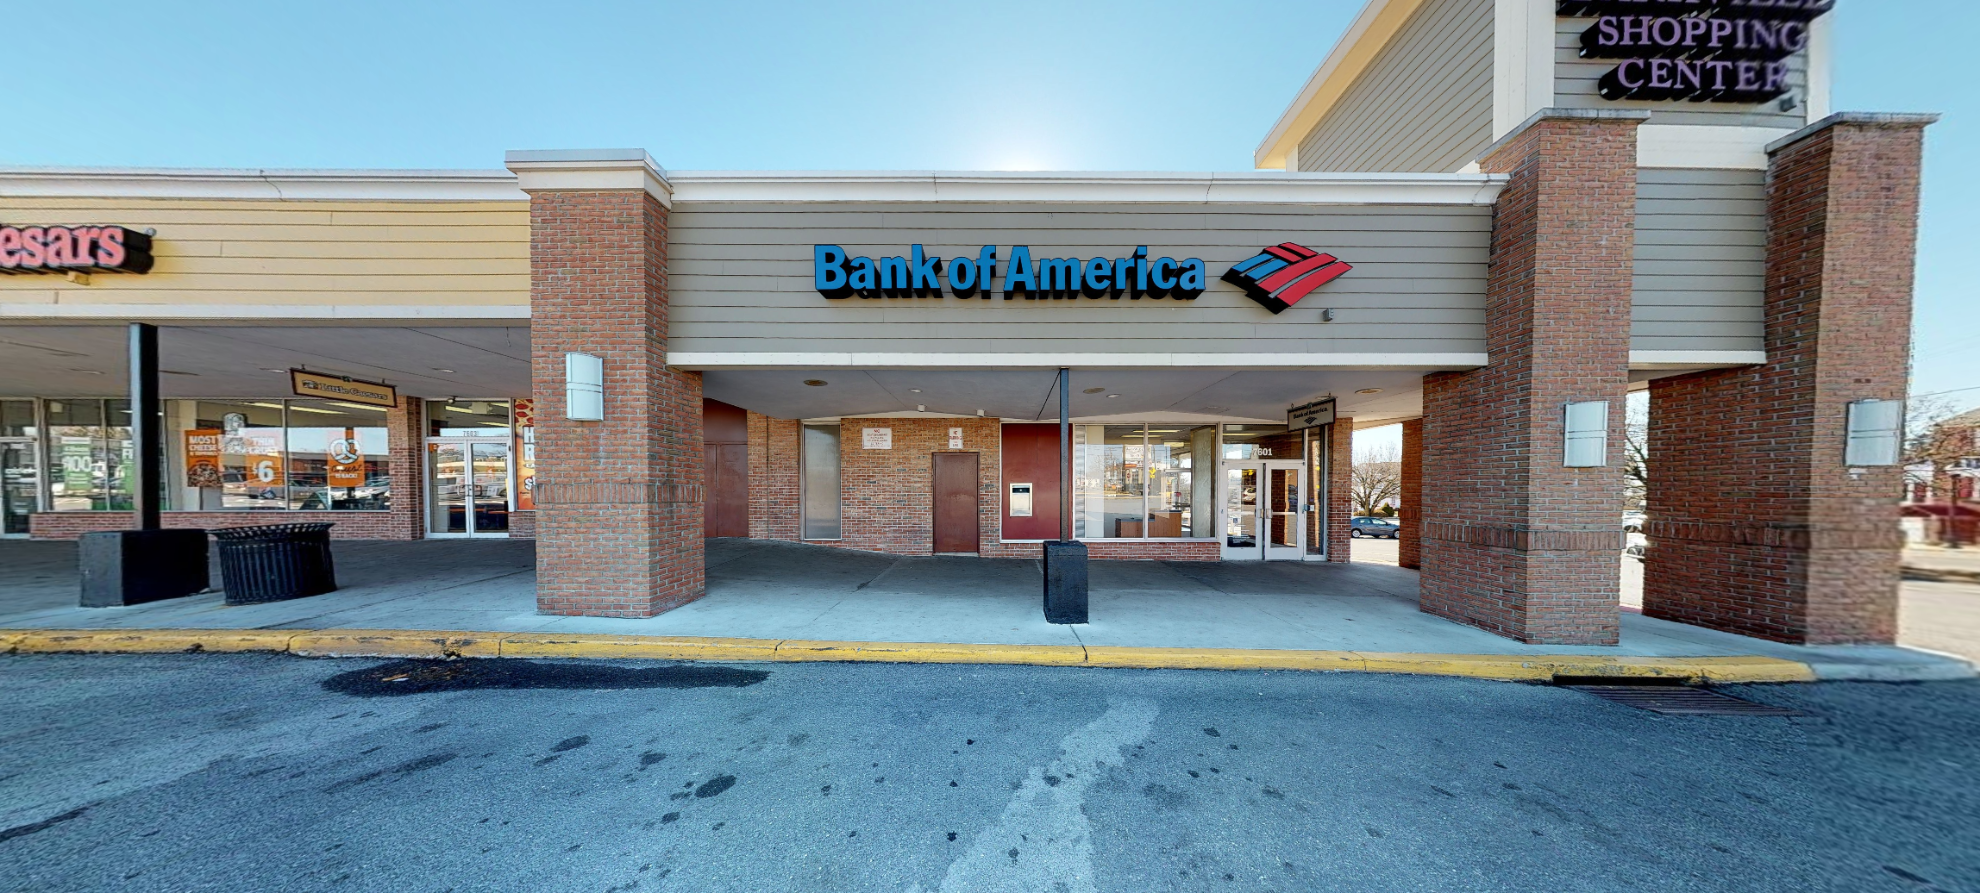 Bank of America financial center with drive-thru ATM   7601 Harford Rd, Baltimore, MD 21234